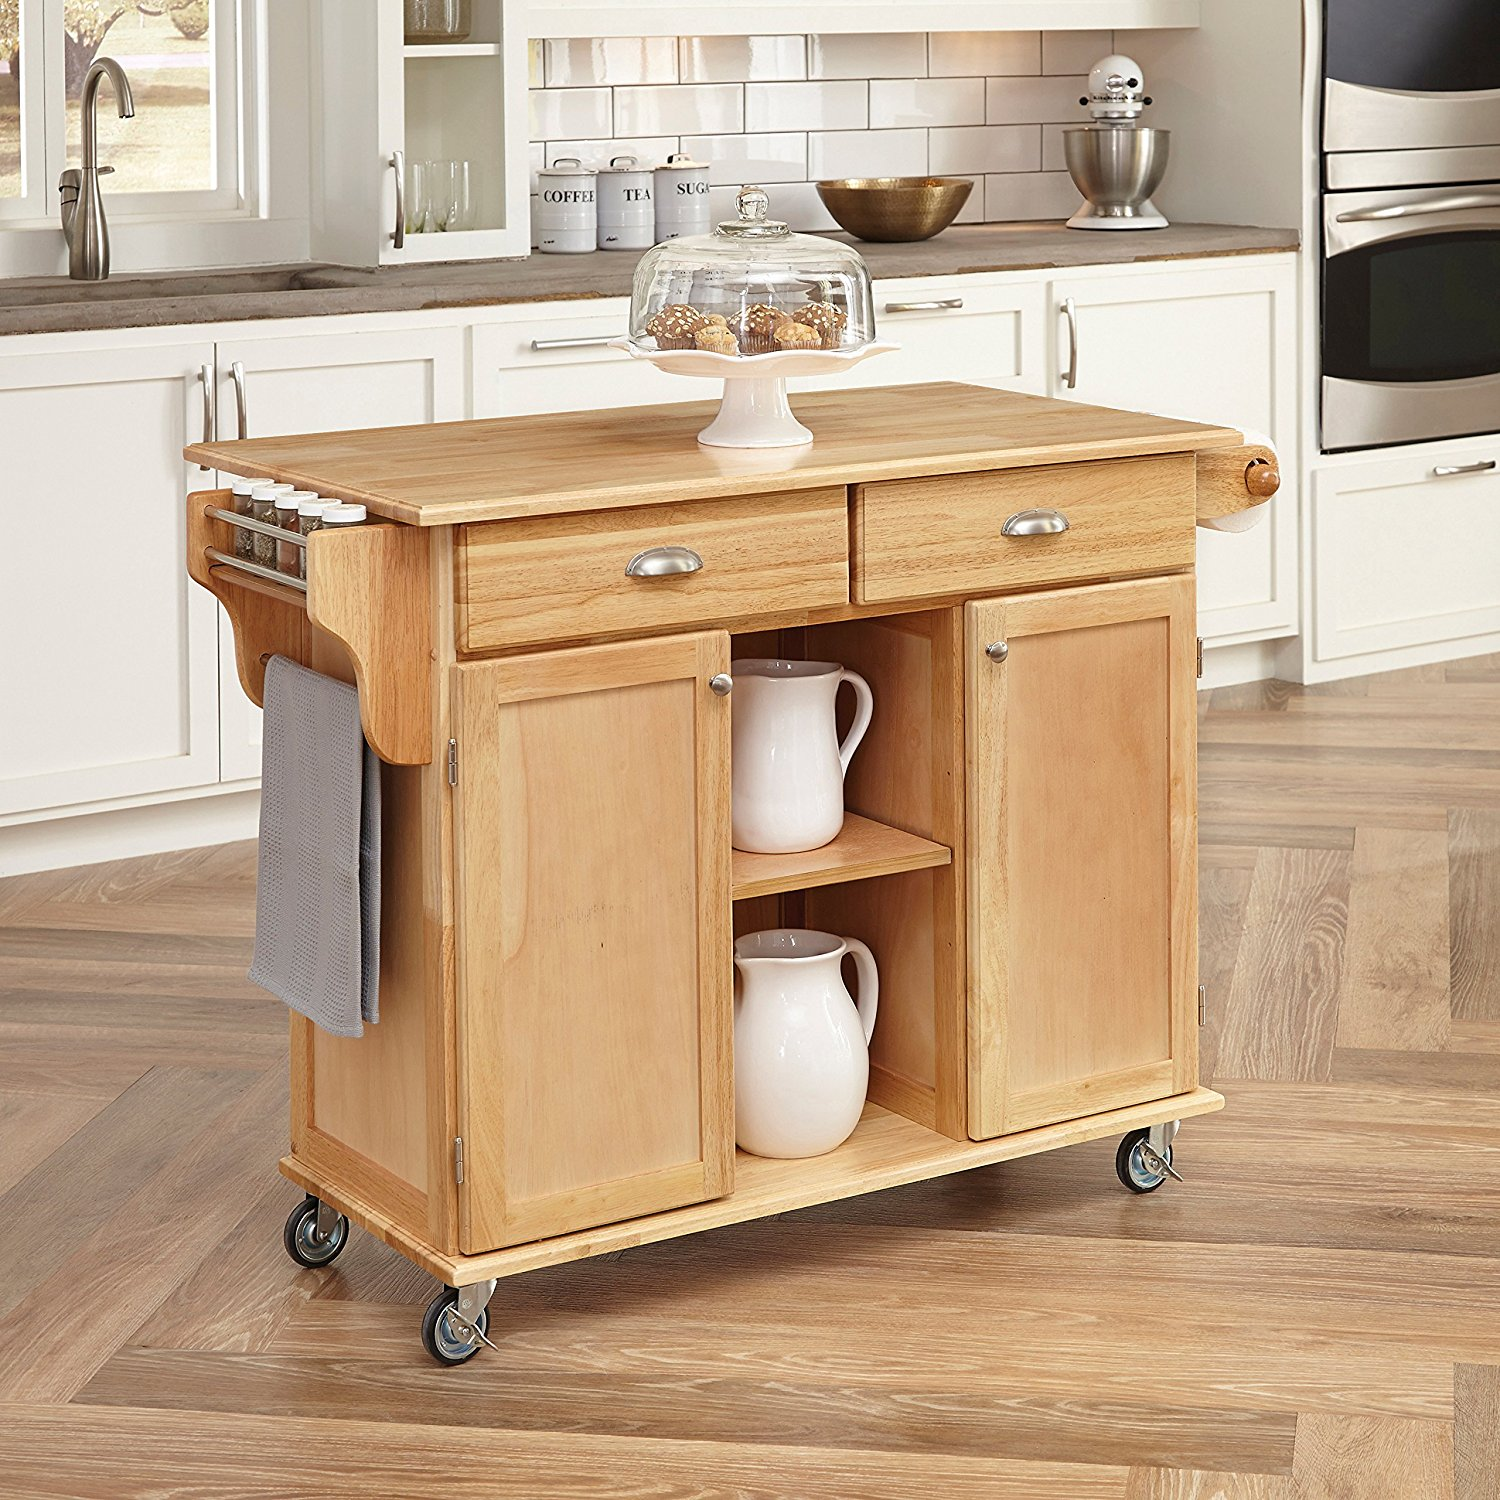 2018 Top 10 Best Mobile Kitchen Carts Centers Islands Utility Tables